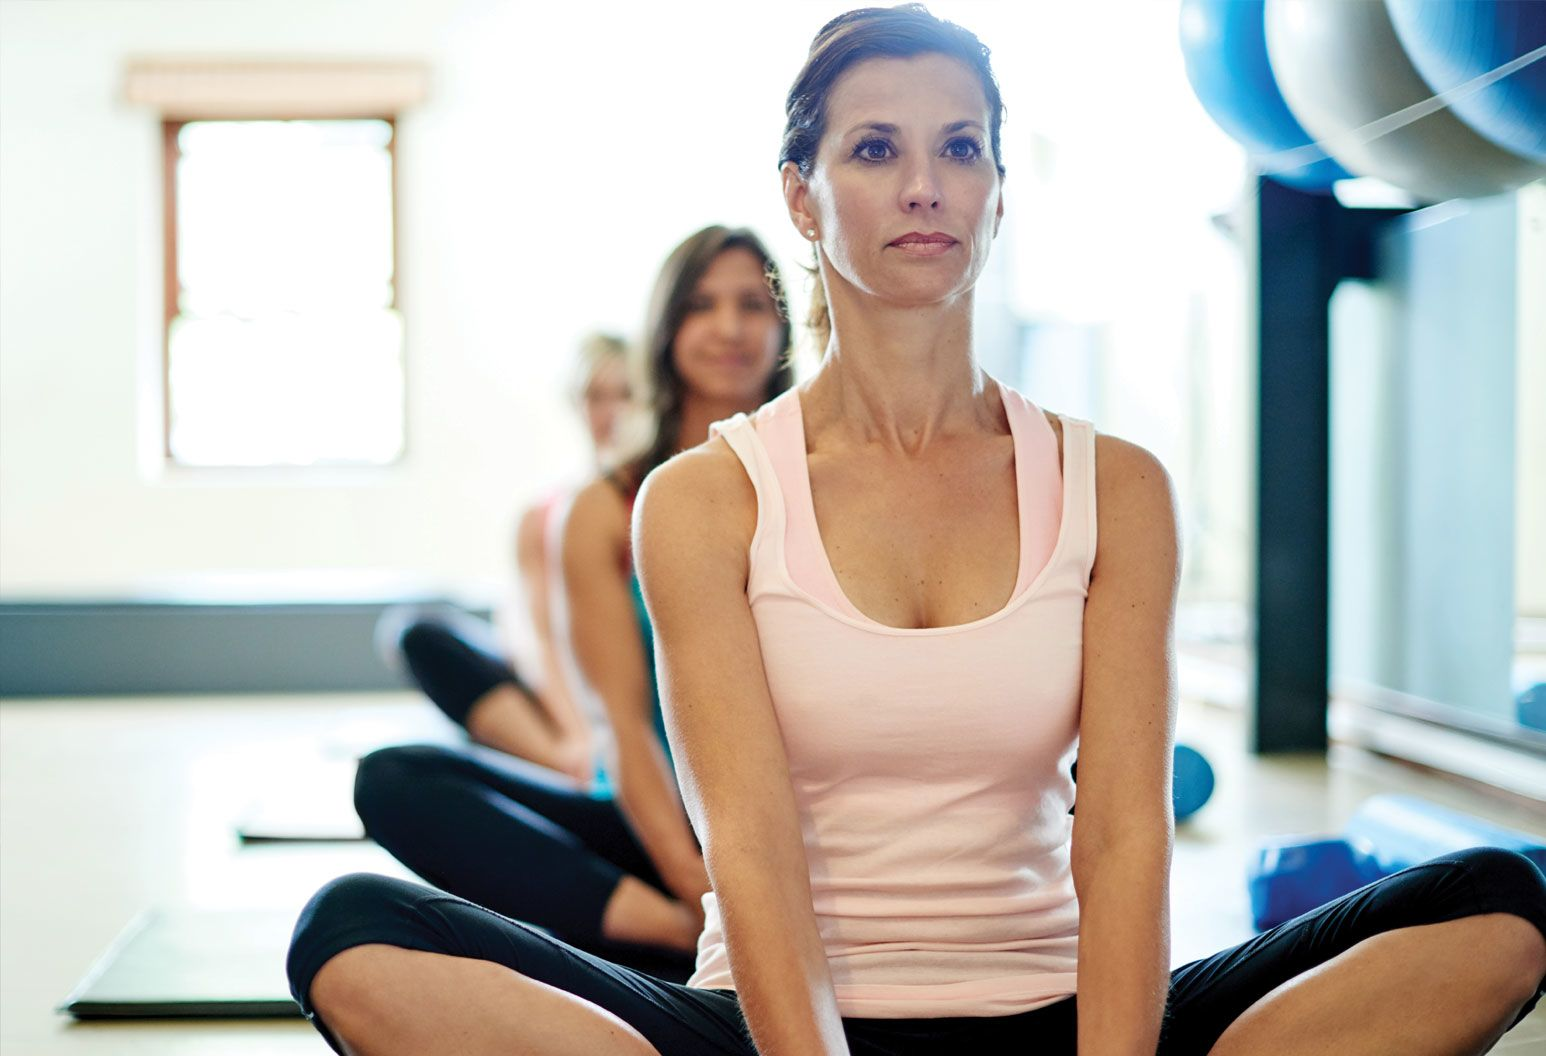 A group of women sit cross-legged in a workout class. The focus is on a woman in the front wearing a pink tank top and black knee-length leggings. The other women are blurred in the background. They all sit on yoga mats.